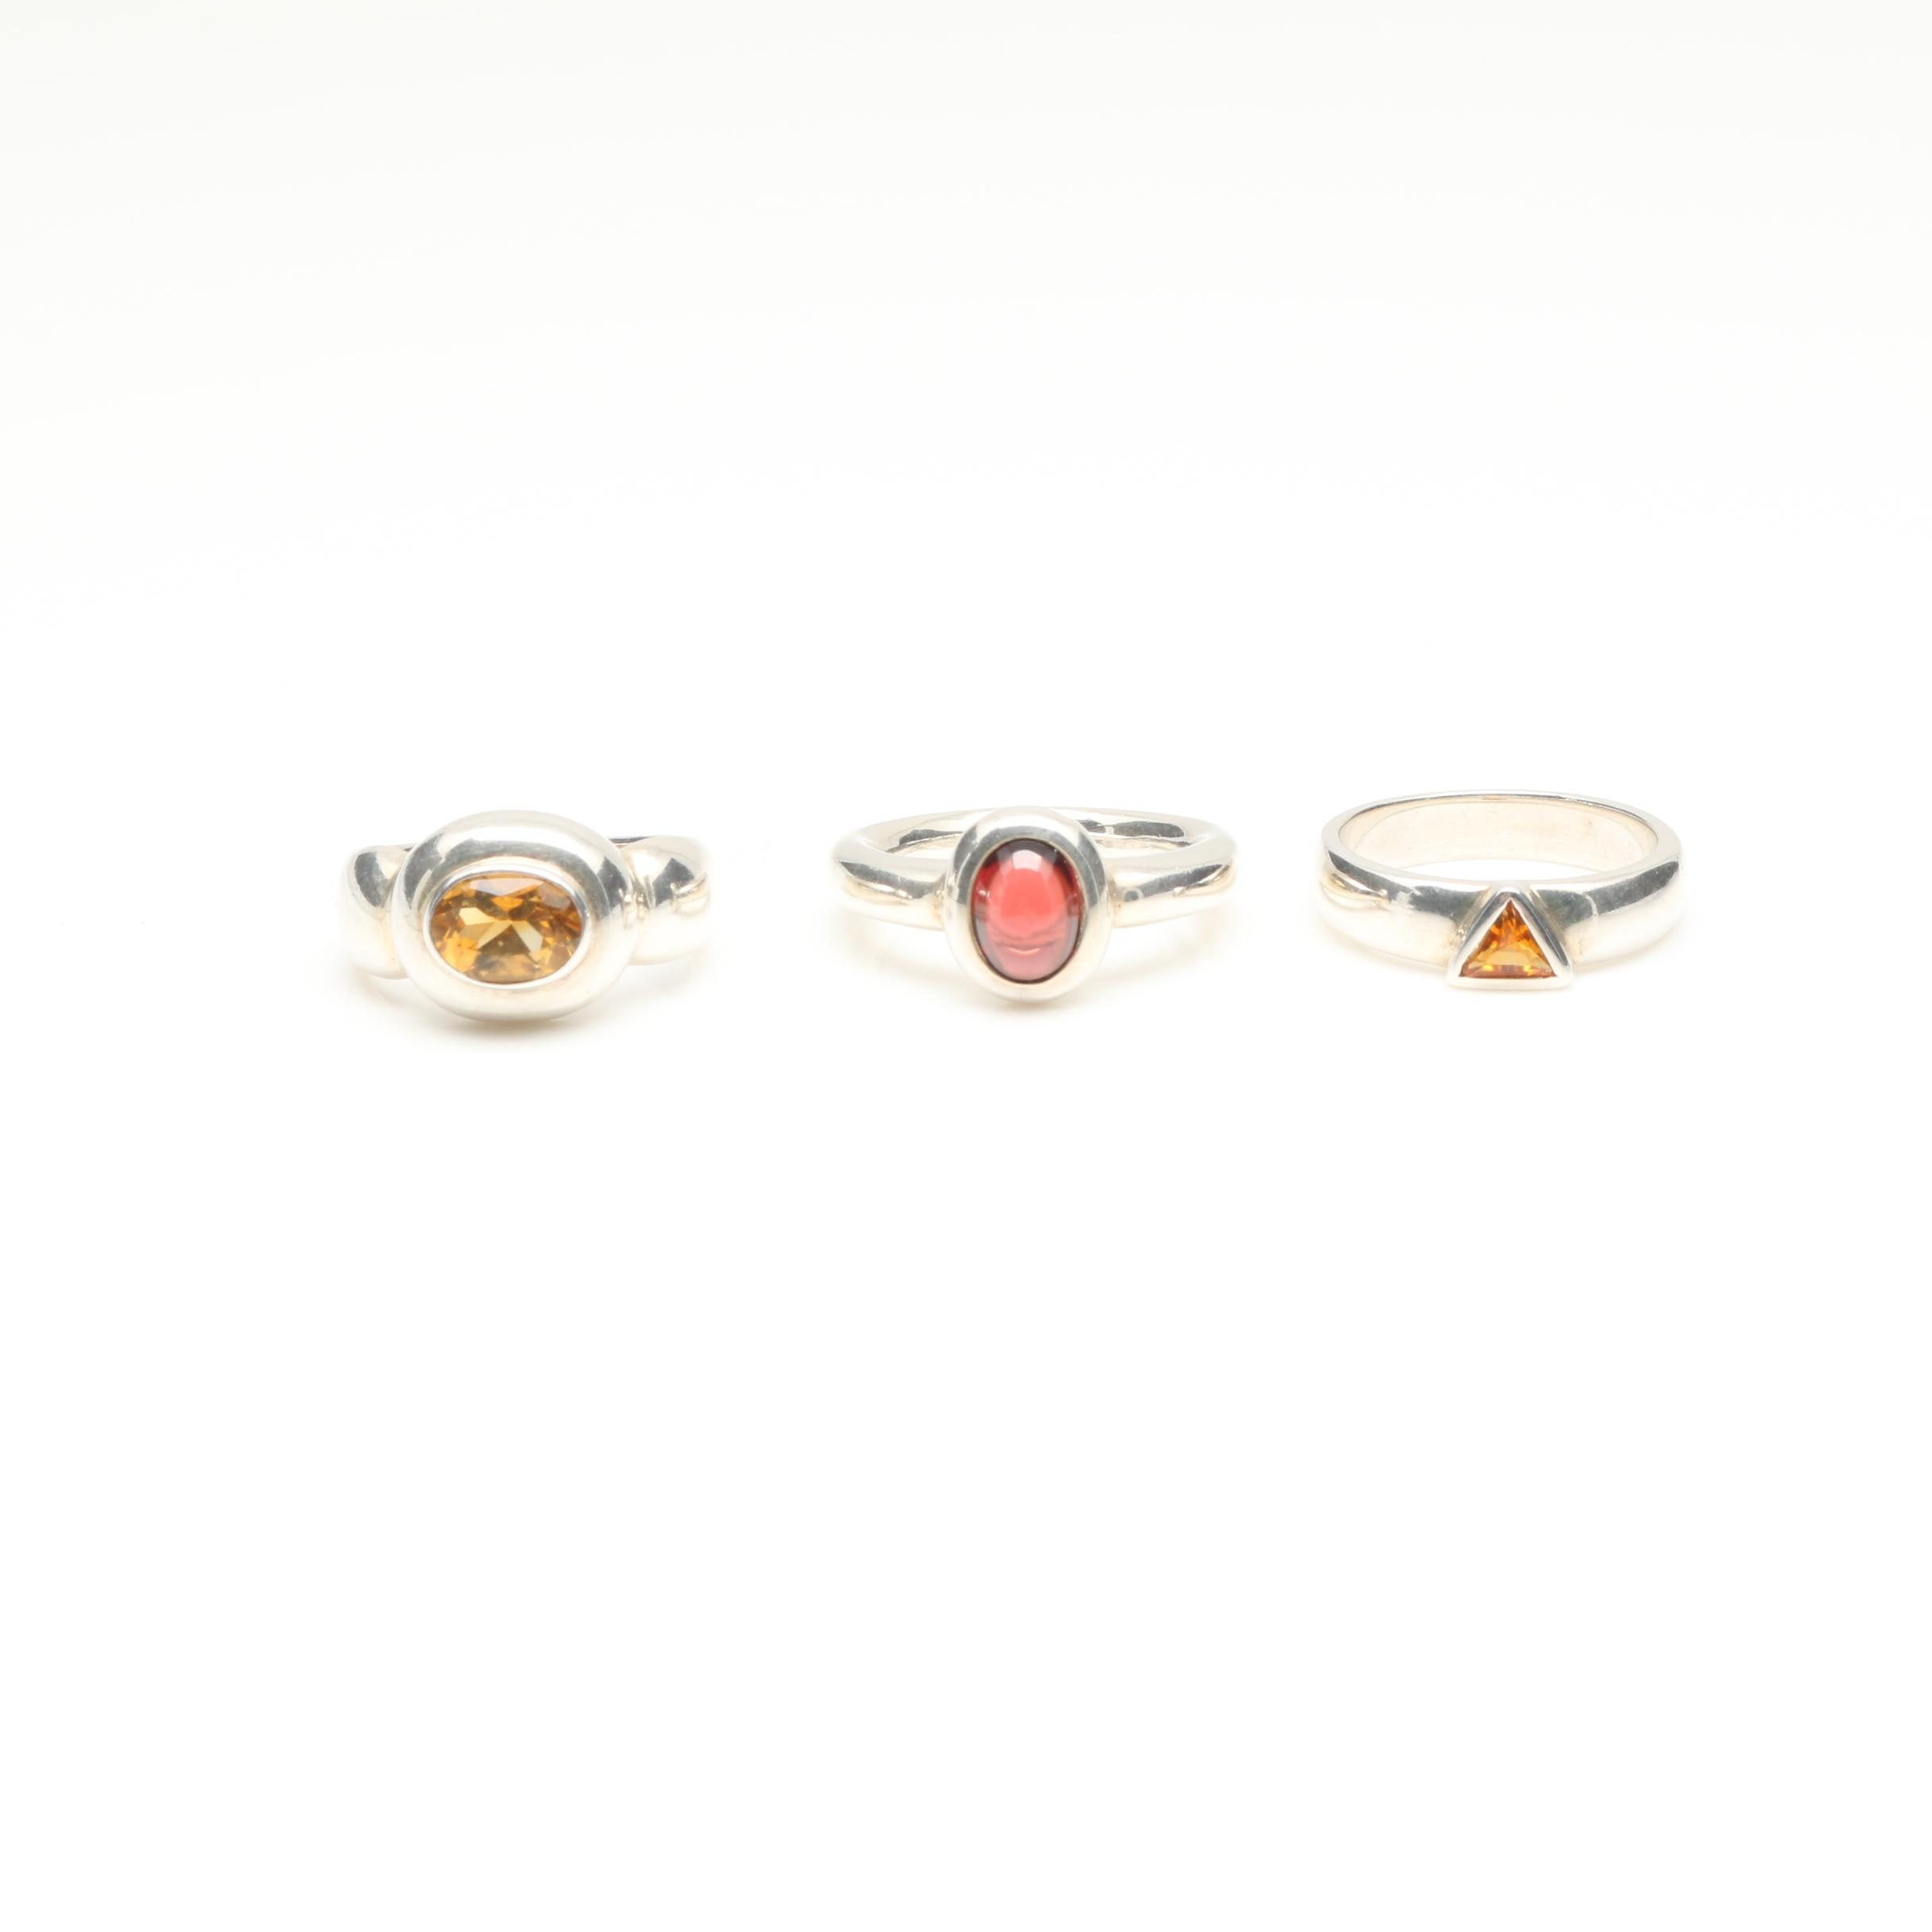 Sterling Silver Citrine and Garnet Ring Assortment